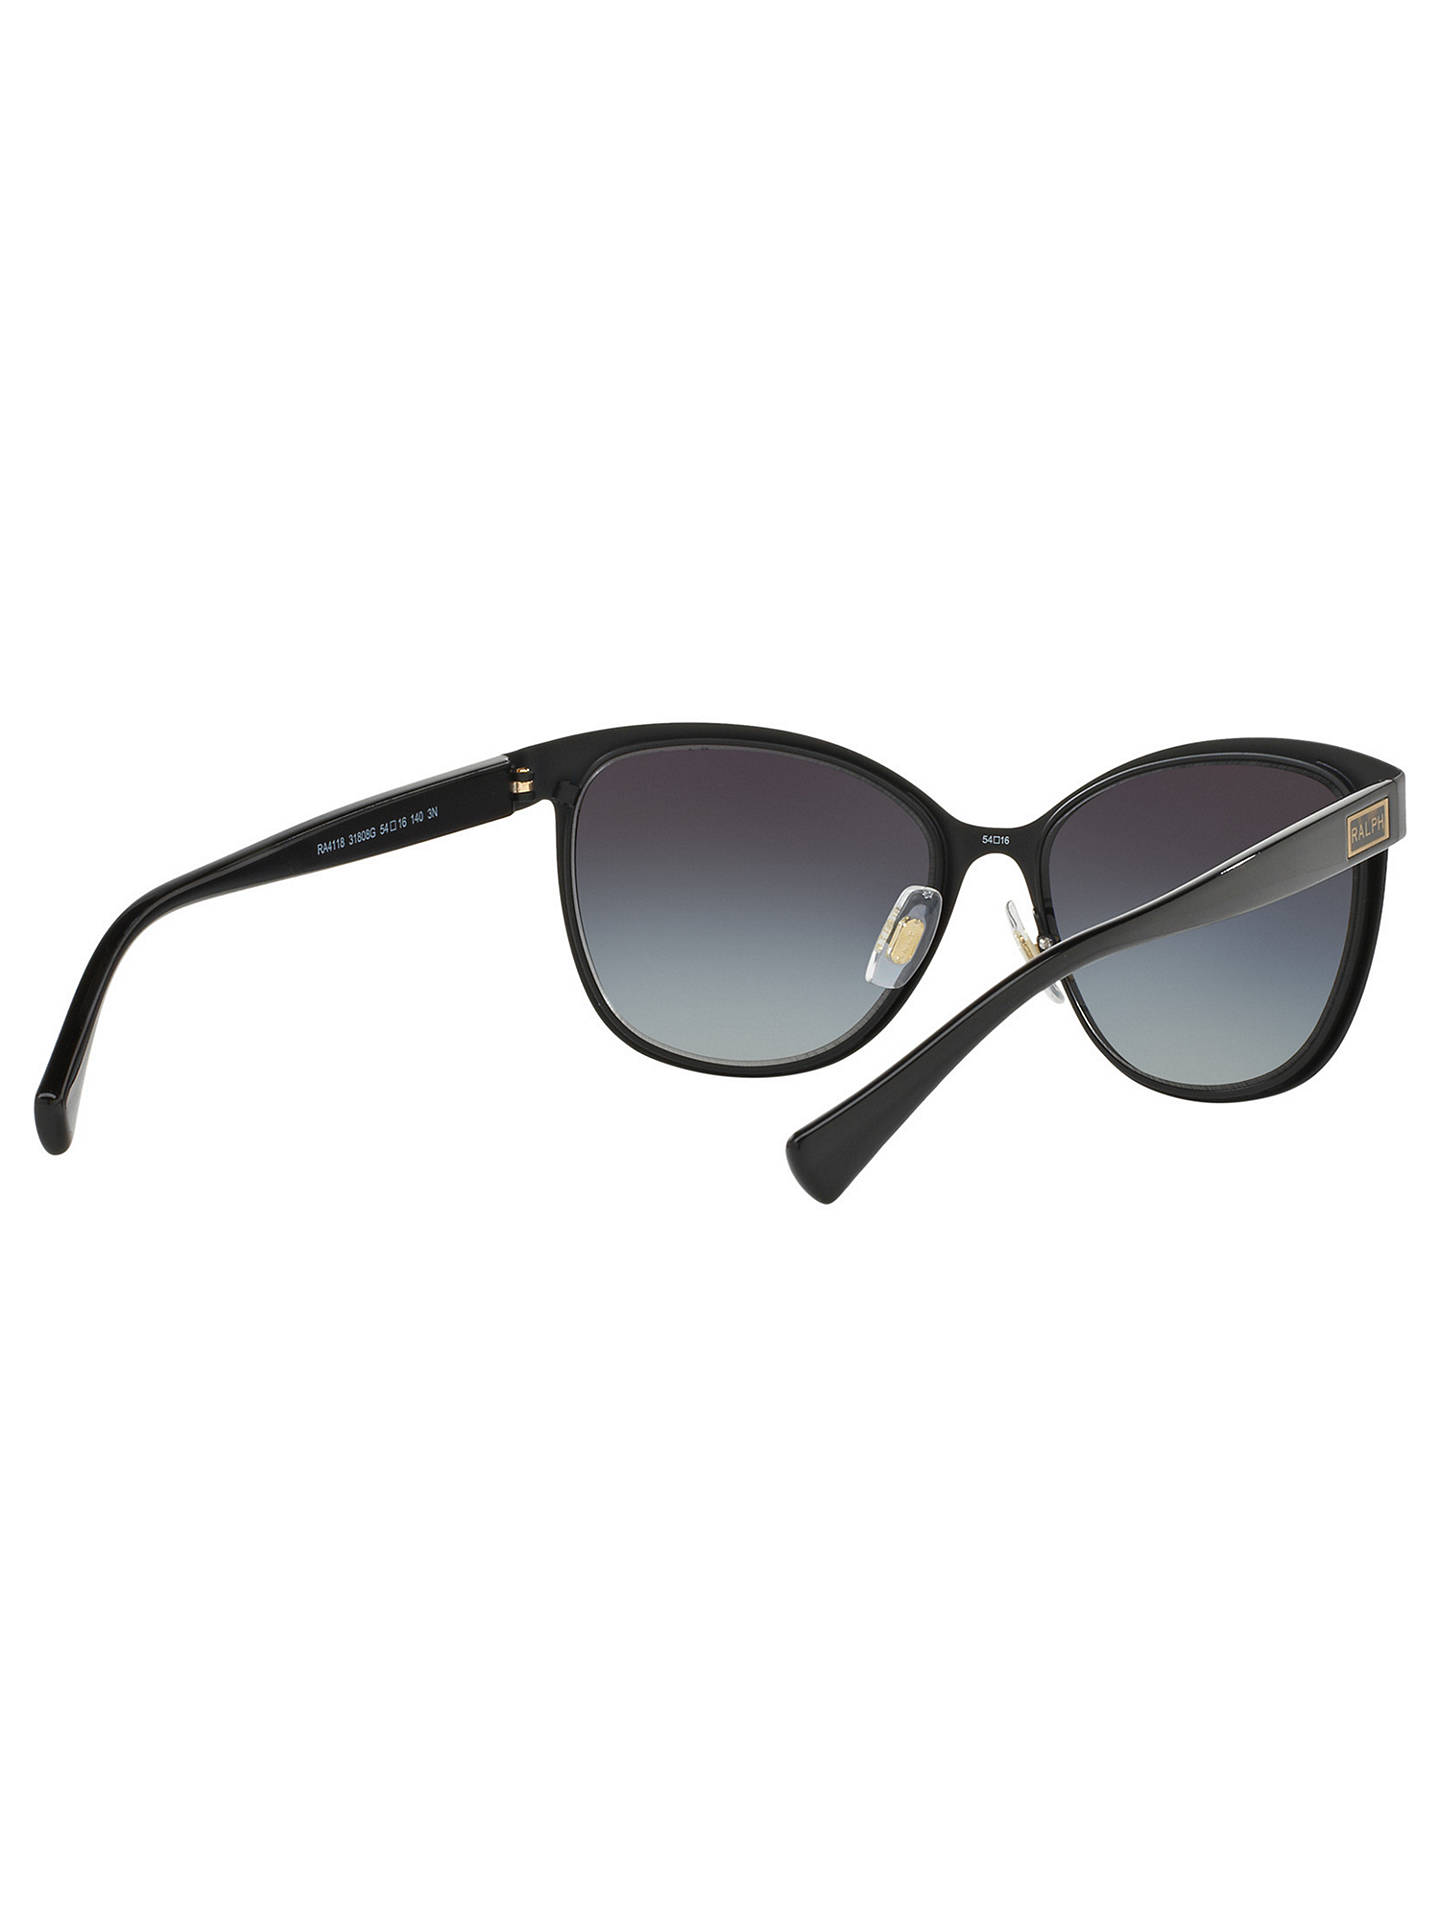 BuyRalph RA4118 Cat's Eye Sunglasses, Black/Grey Gradient Online at johnlewis.com